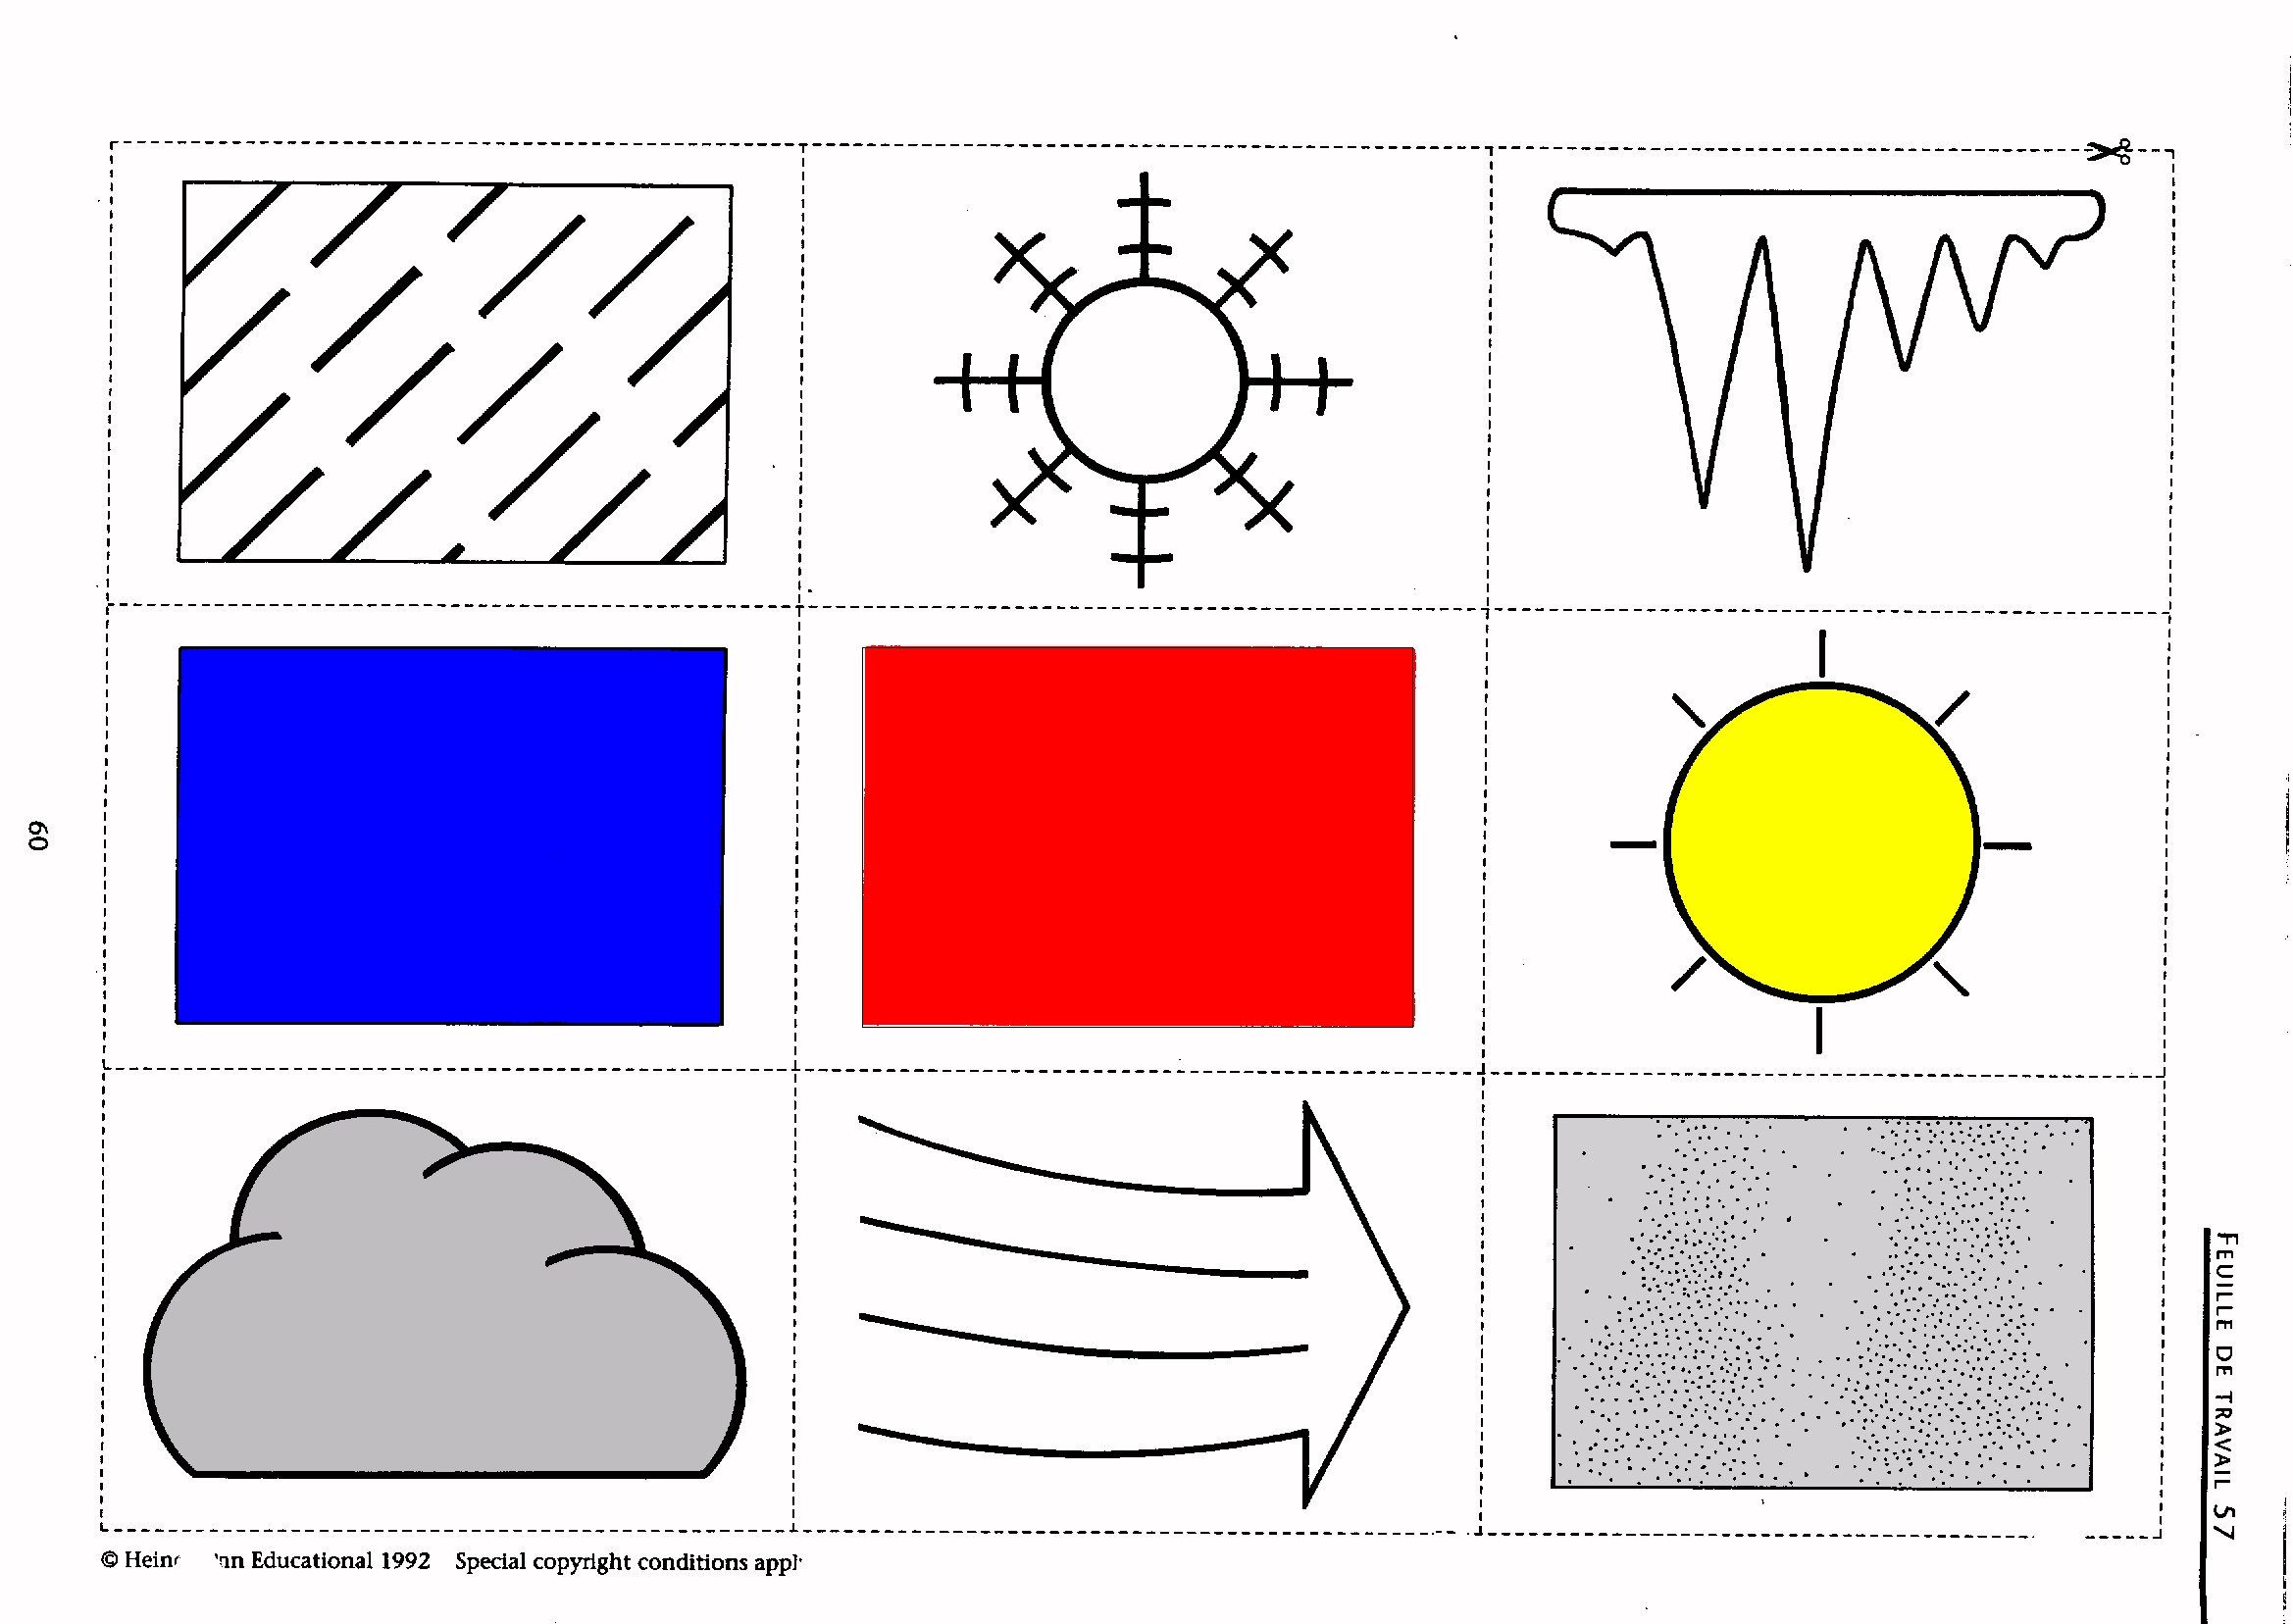 Weather Forecast Symbols For Children